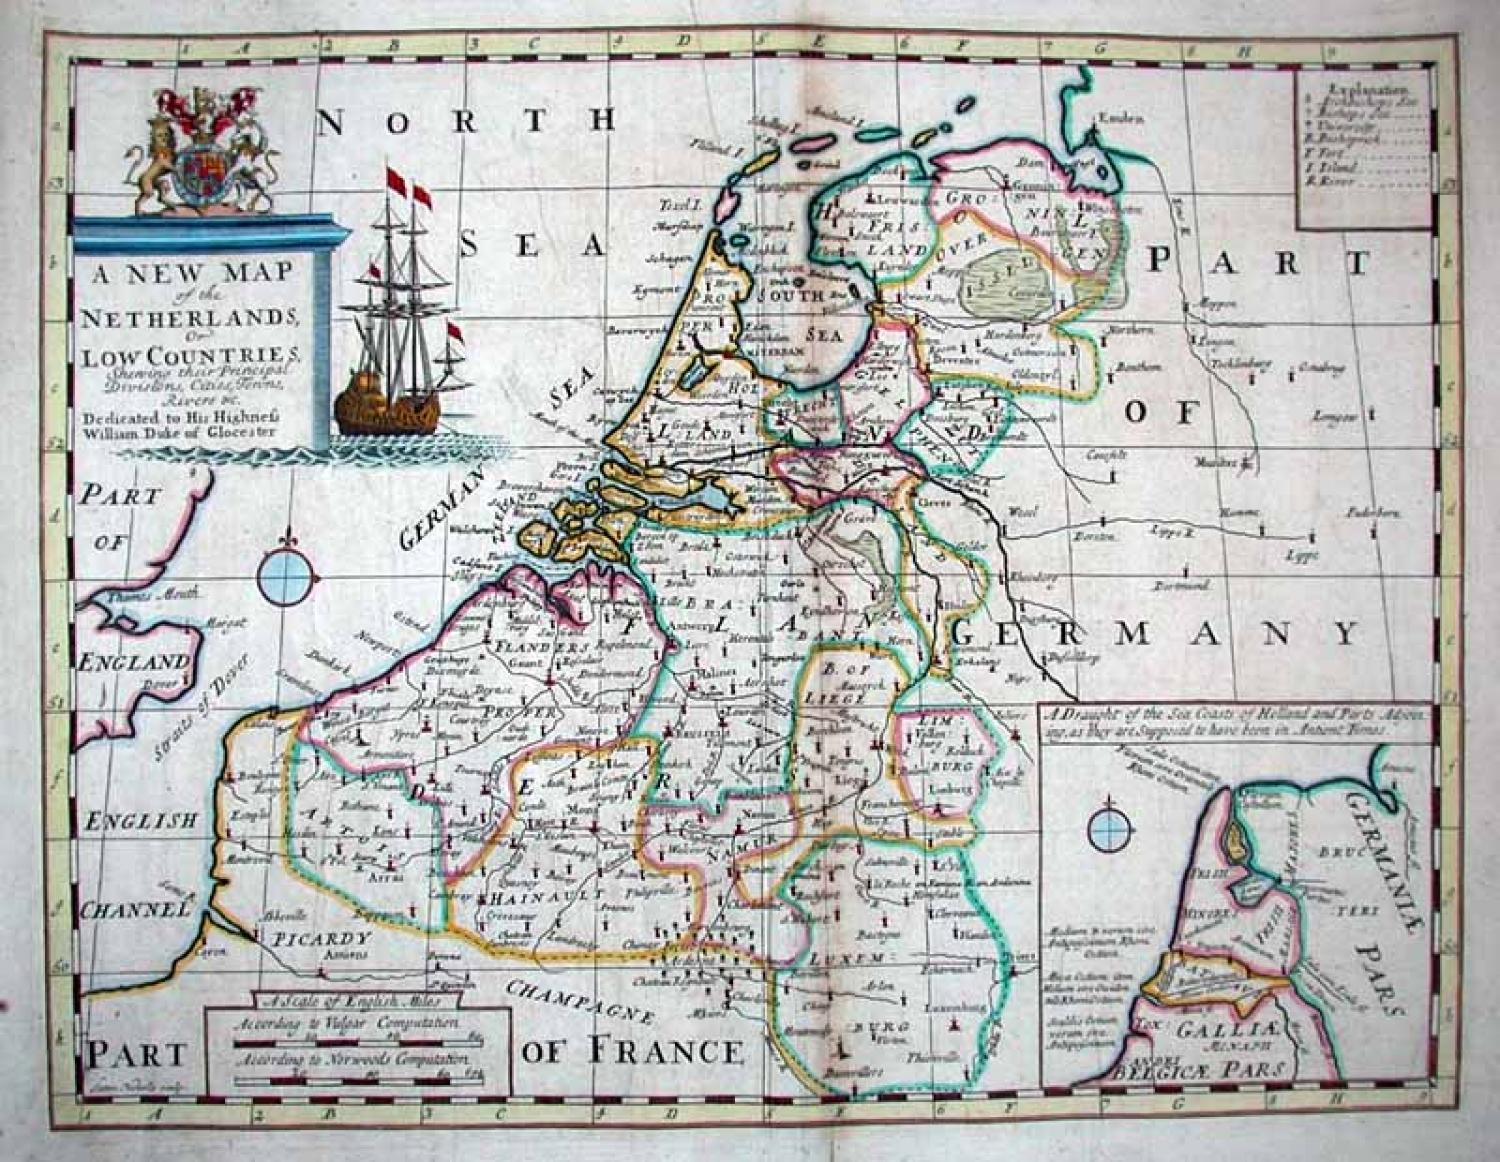 SOLD A New Map of the Netherlands or Low Countries